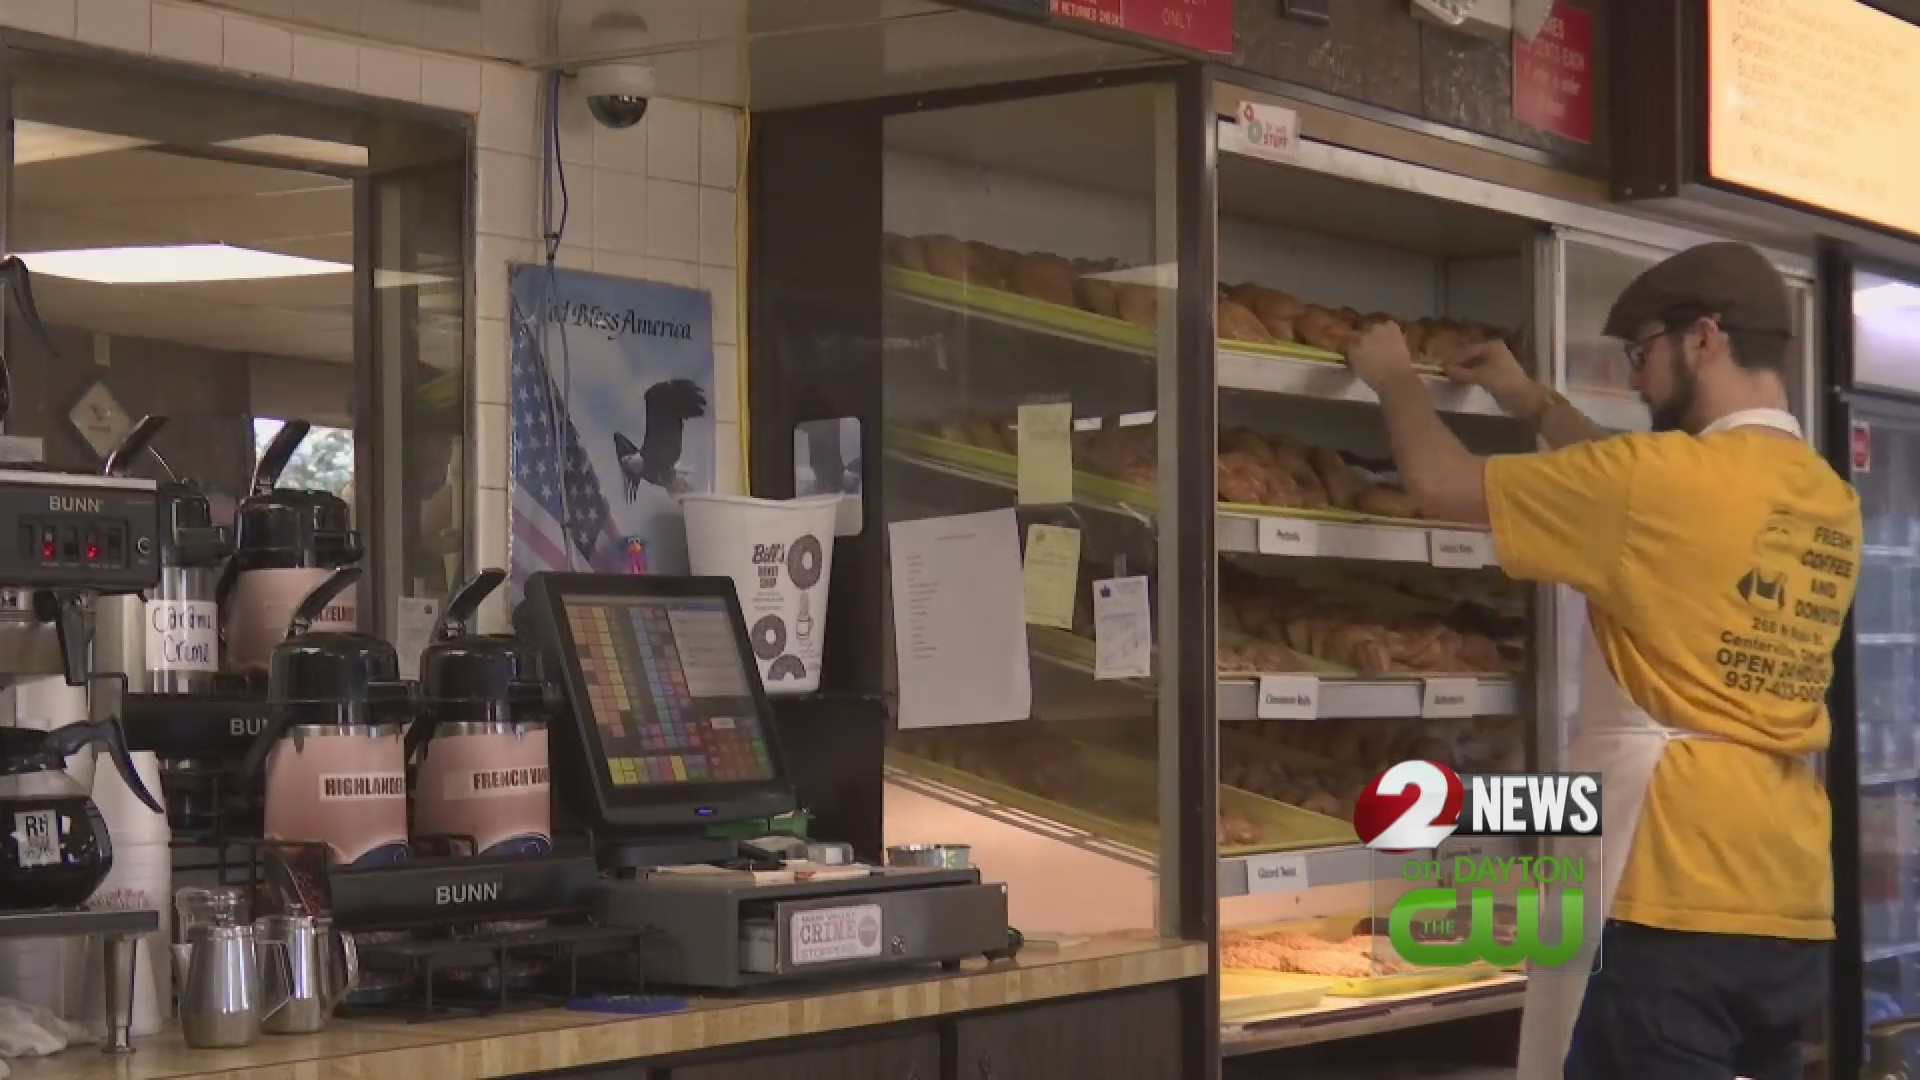 Bill's Donuts to deliver more donations for Hurricane Michael victims